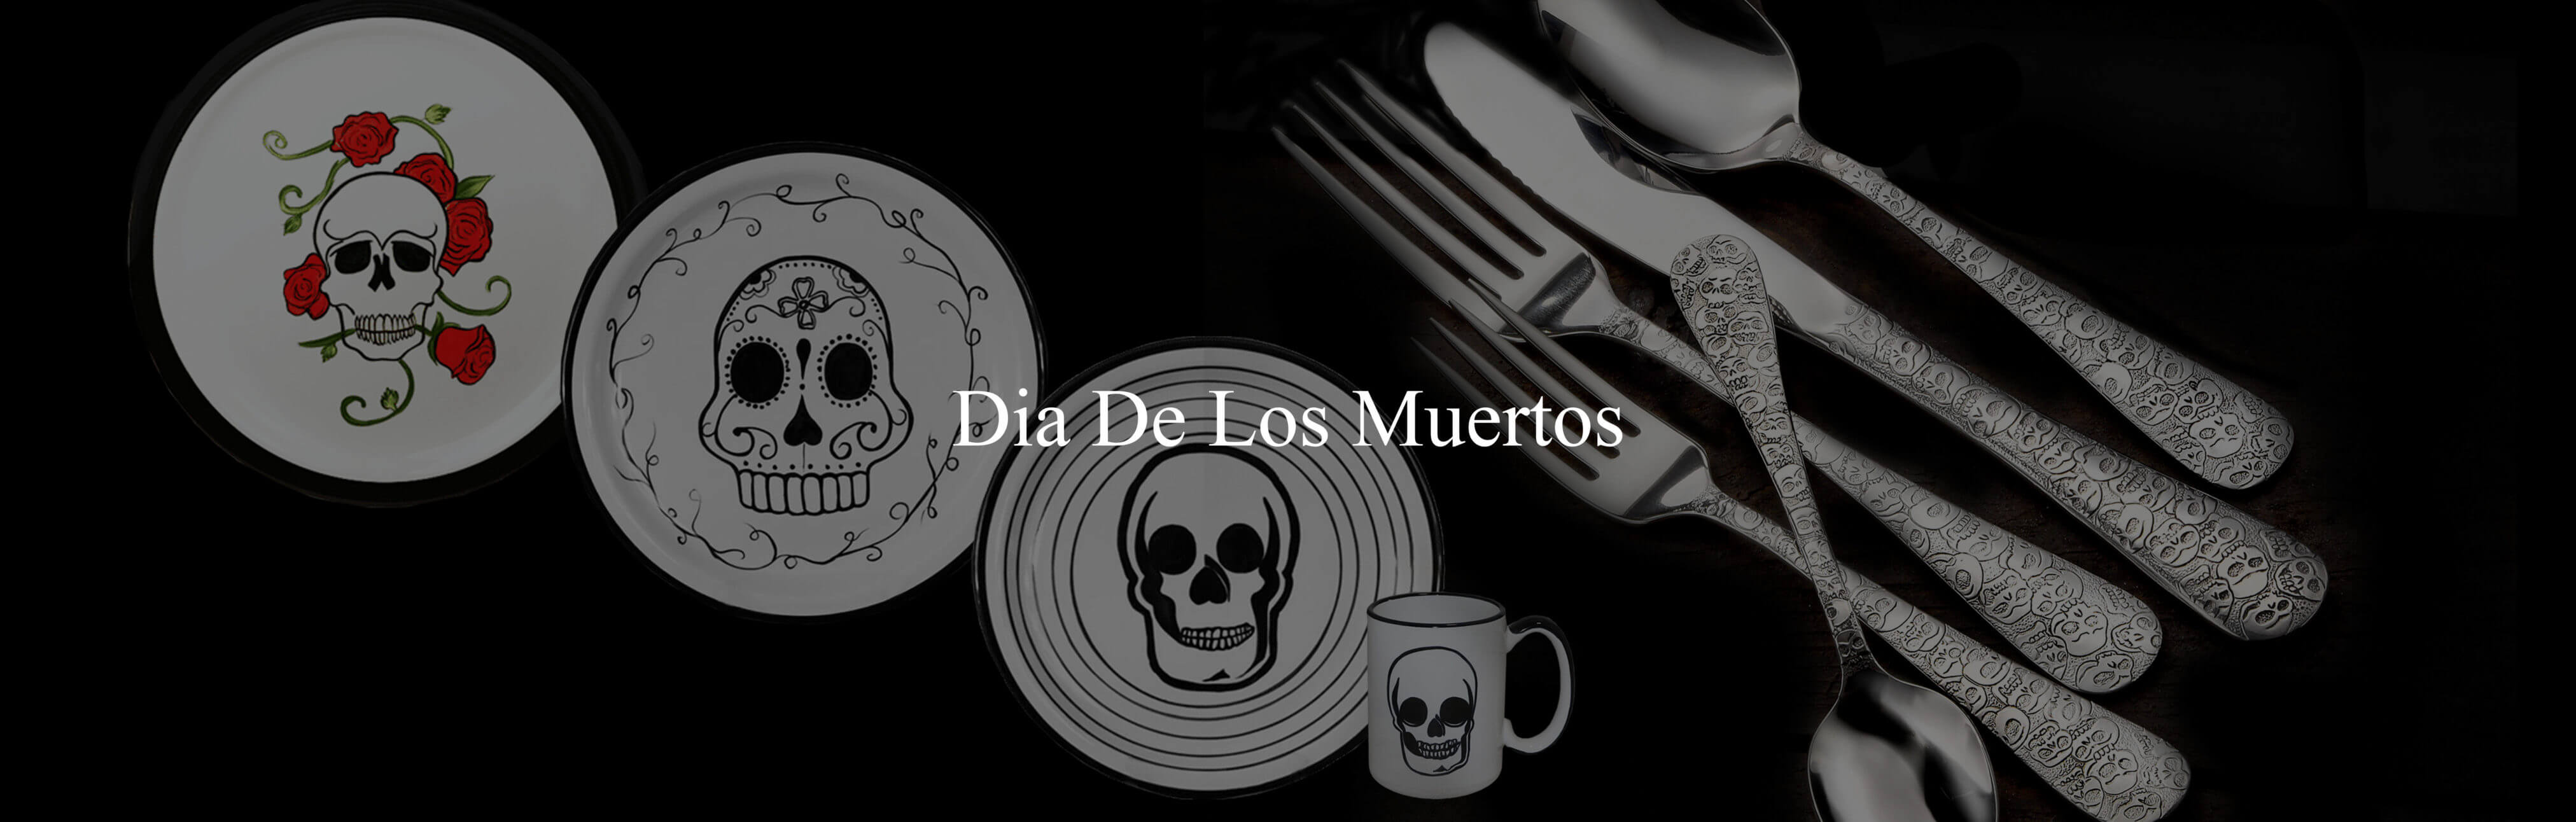 Dia de los Muertos Dinnerware Collection